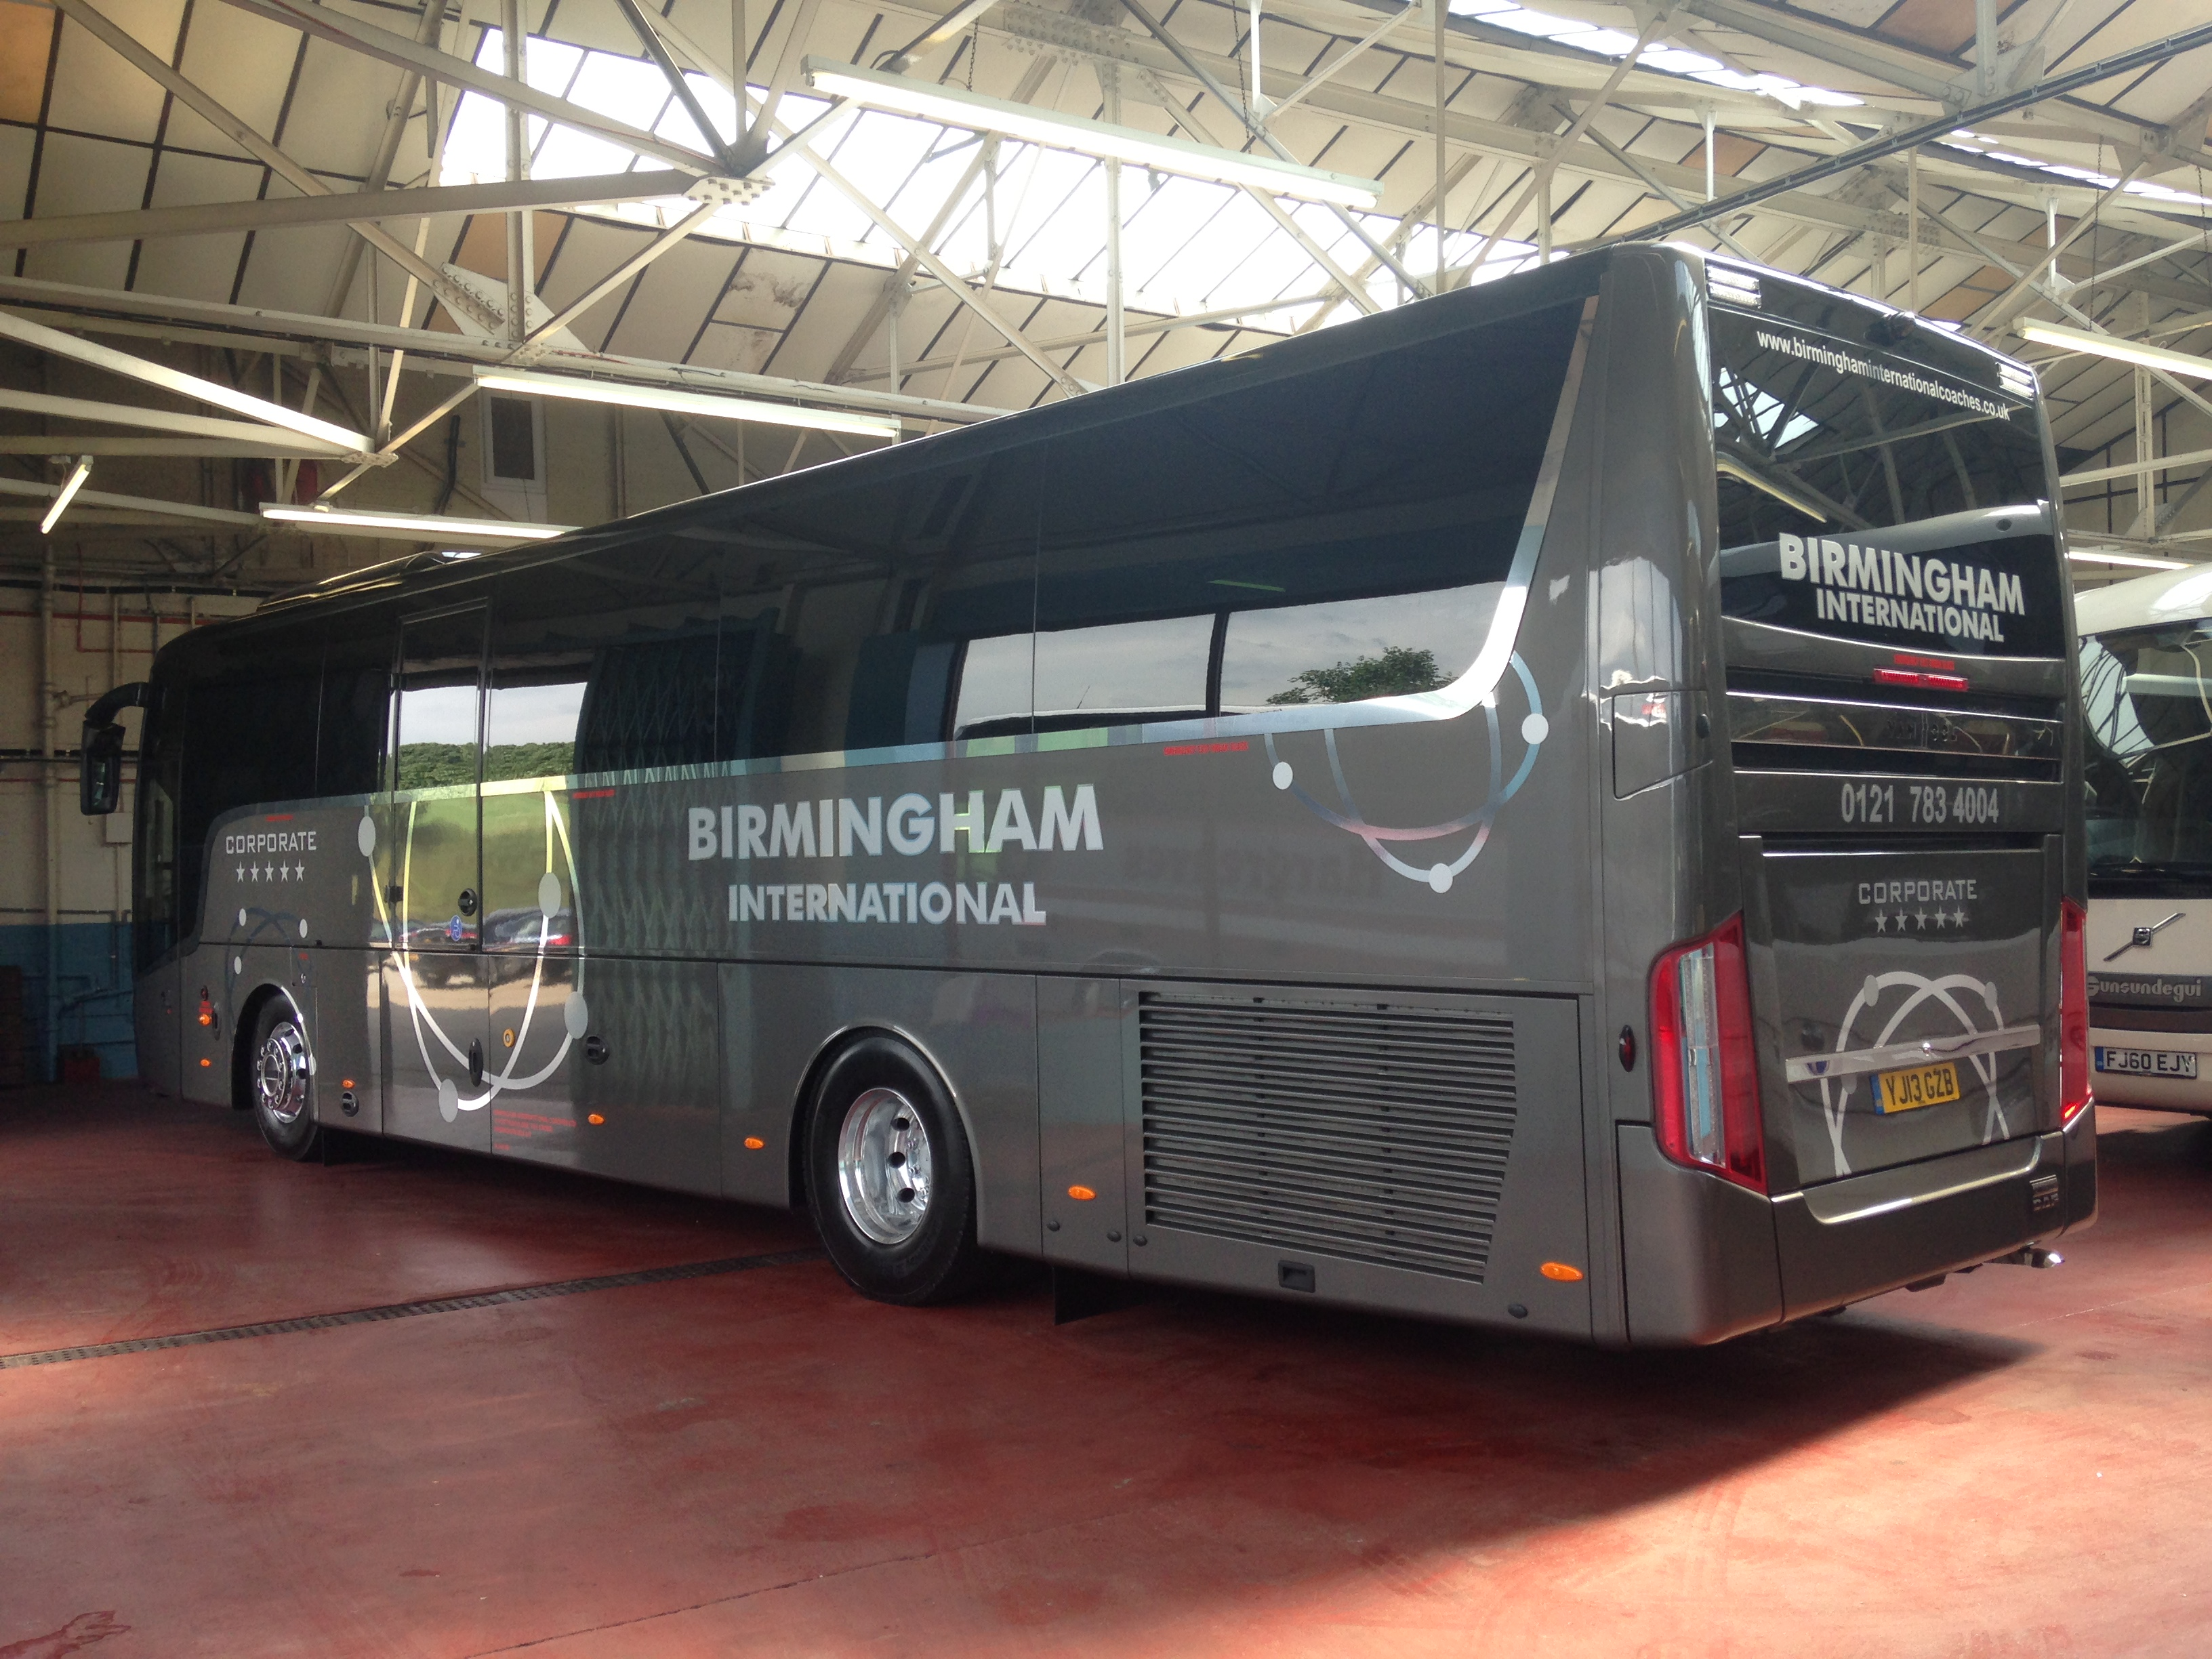 Birmingham Chrome coach graphics